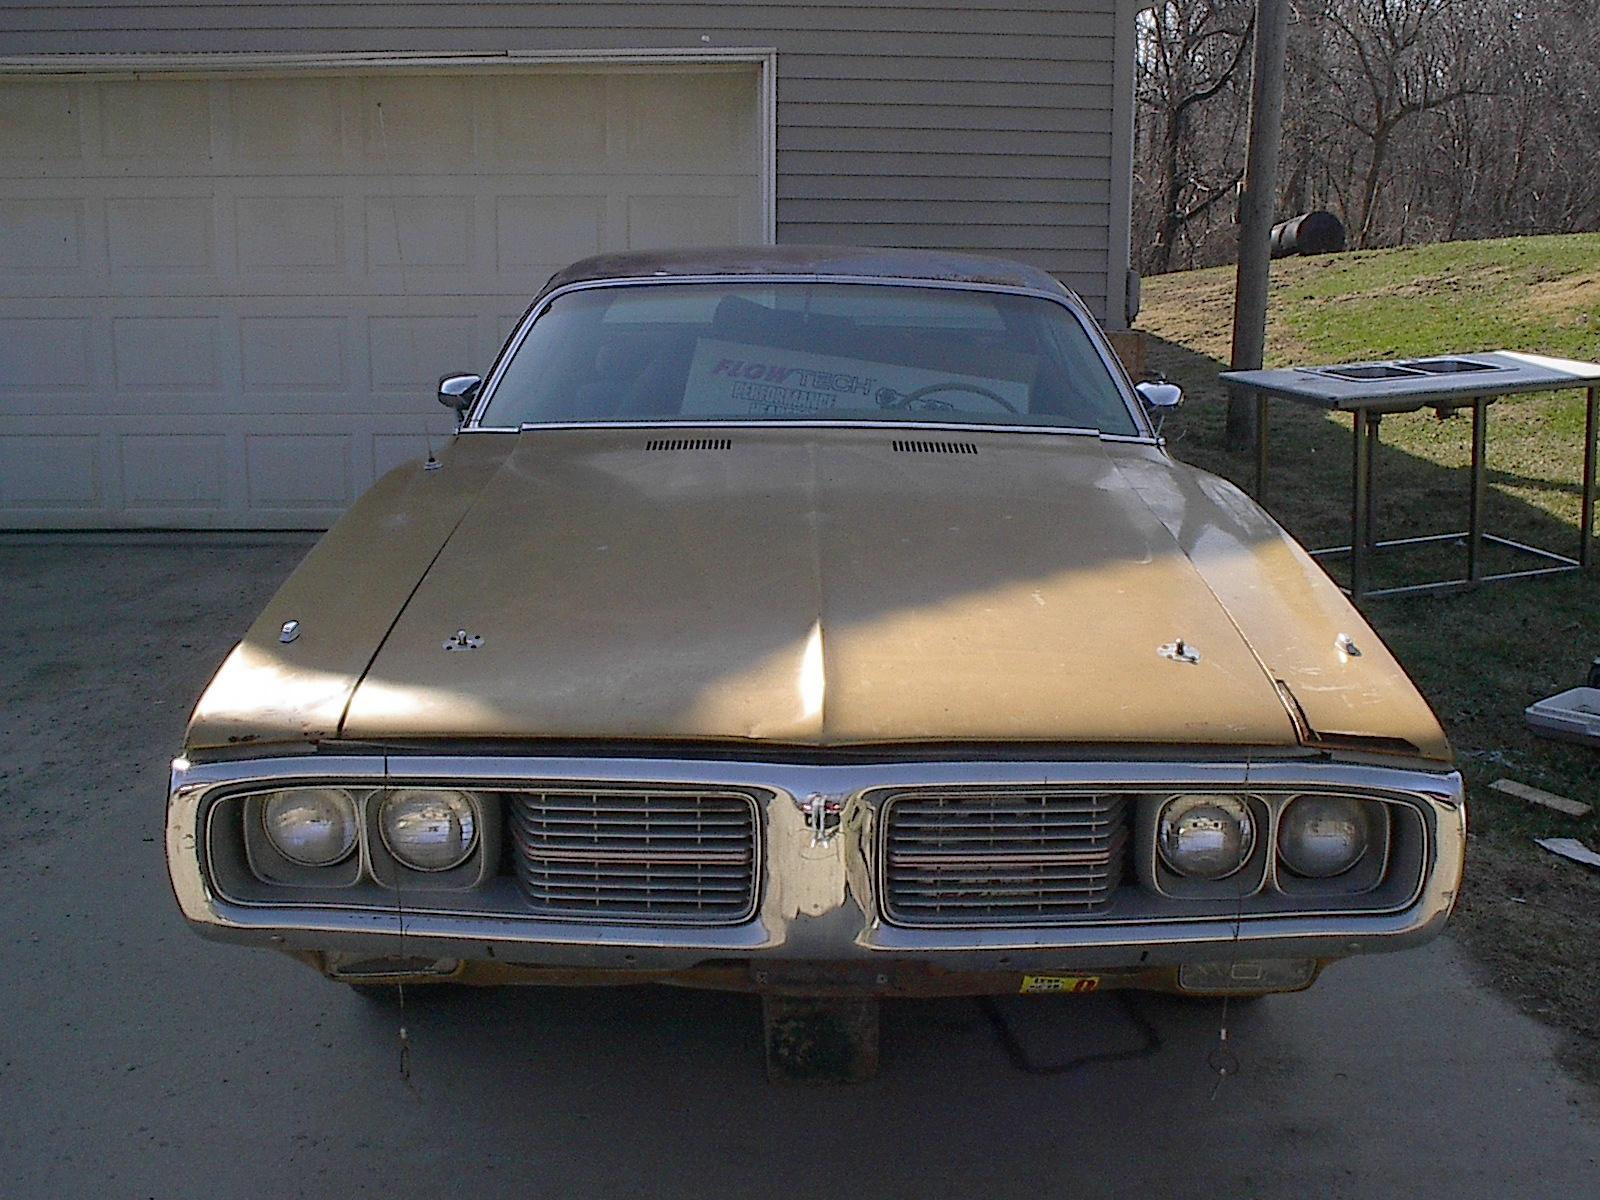 85 stang gt 1973 dodge charger specs photos modification info at cardomain. Black Bedroom Furniture Sets. Home Design Ideas